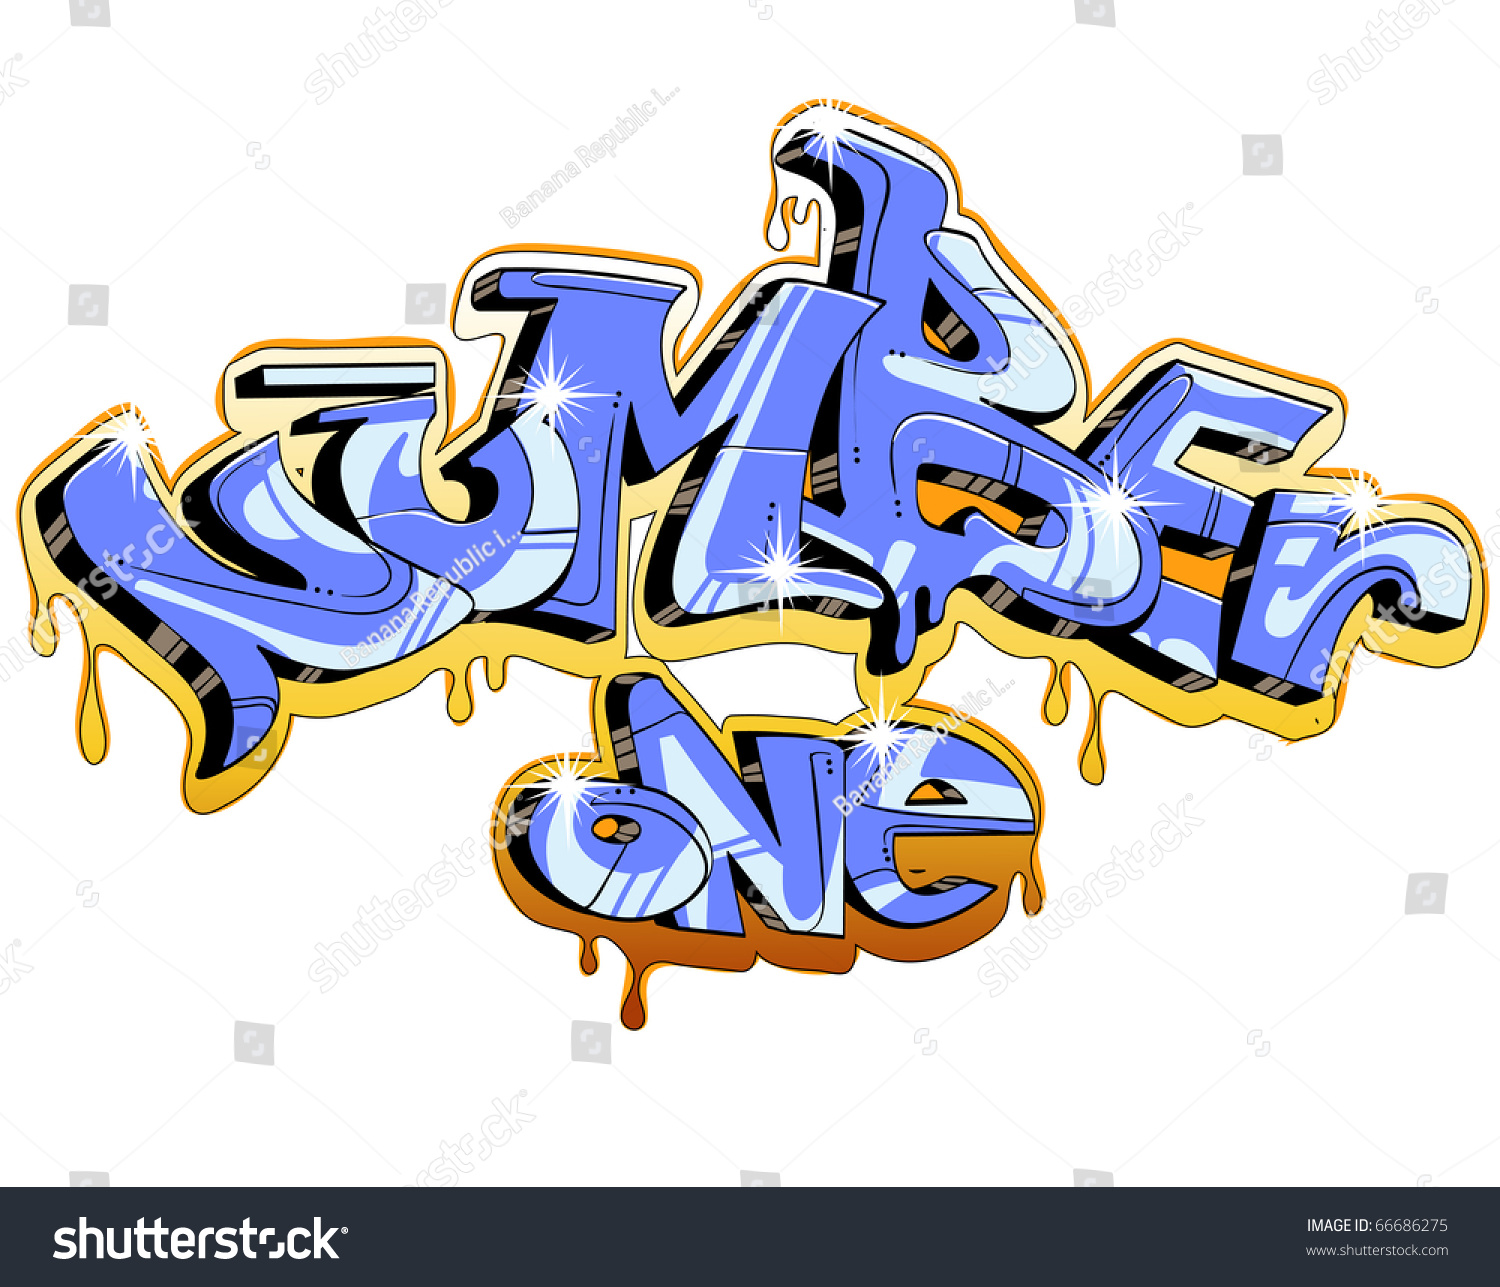 Graffiti Vector Design Number One 66686275 Shutterstock